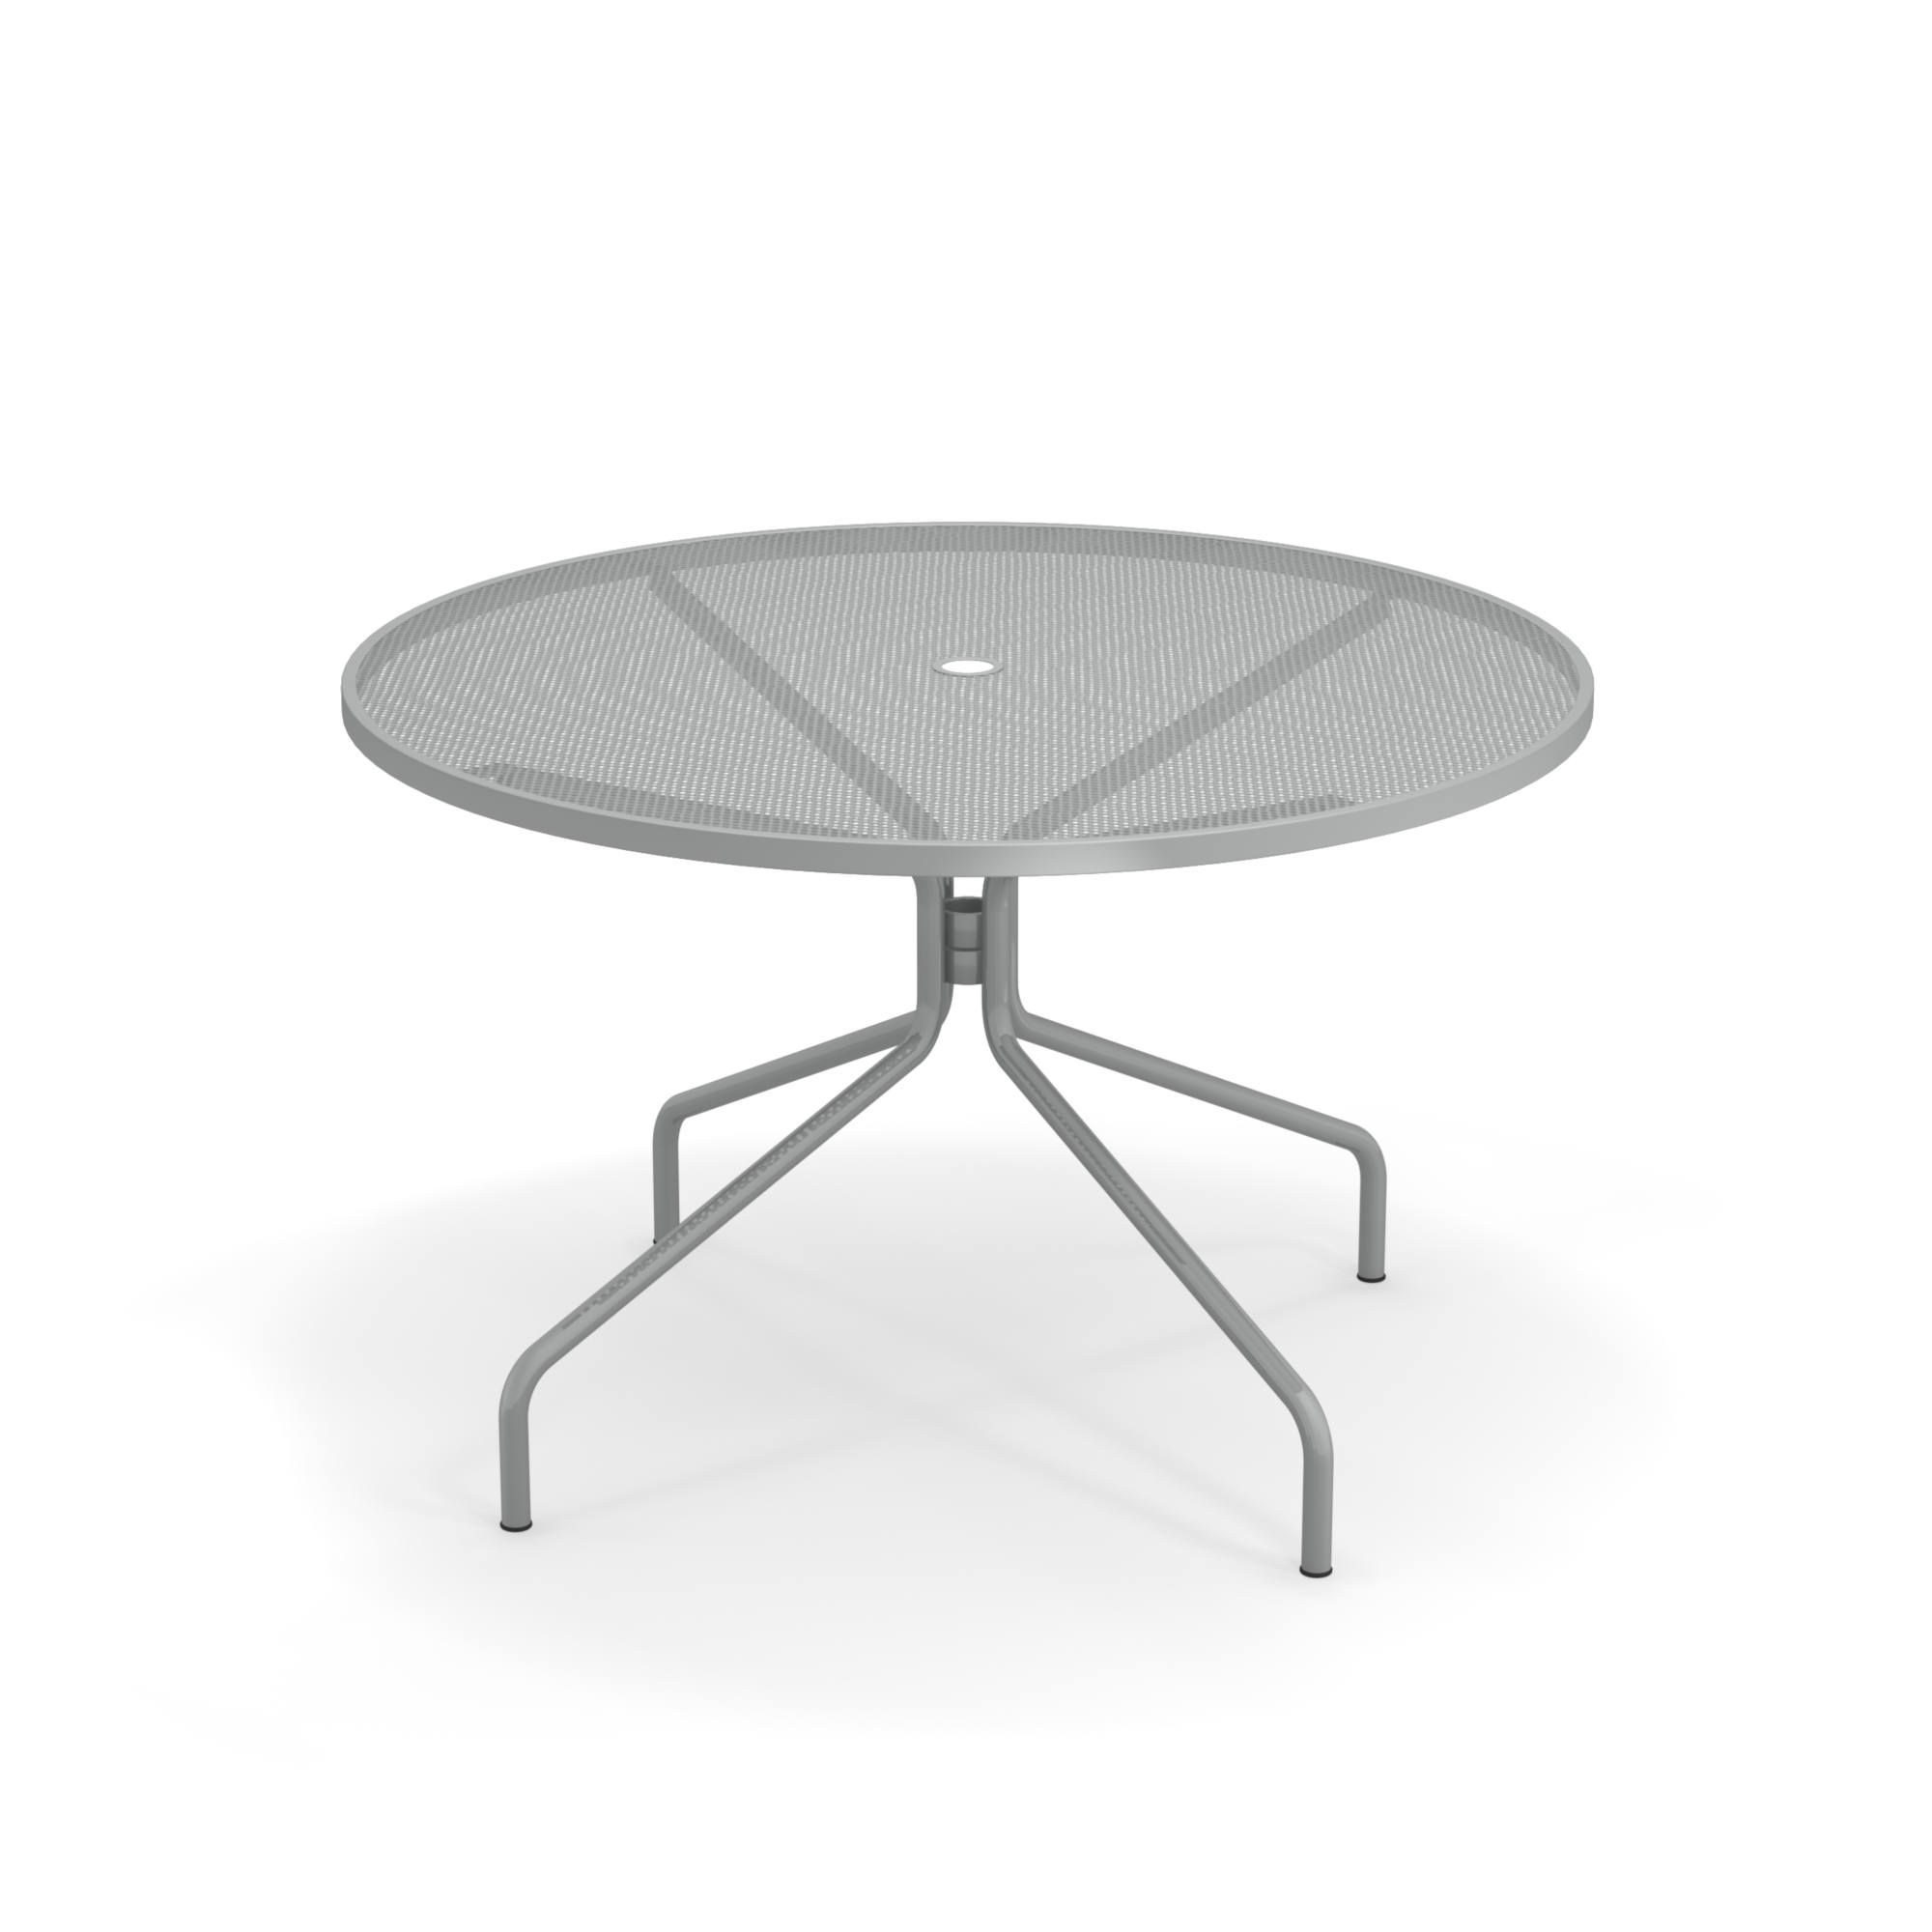 emuamericas, llc 805-20 table, outdoor